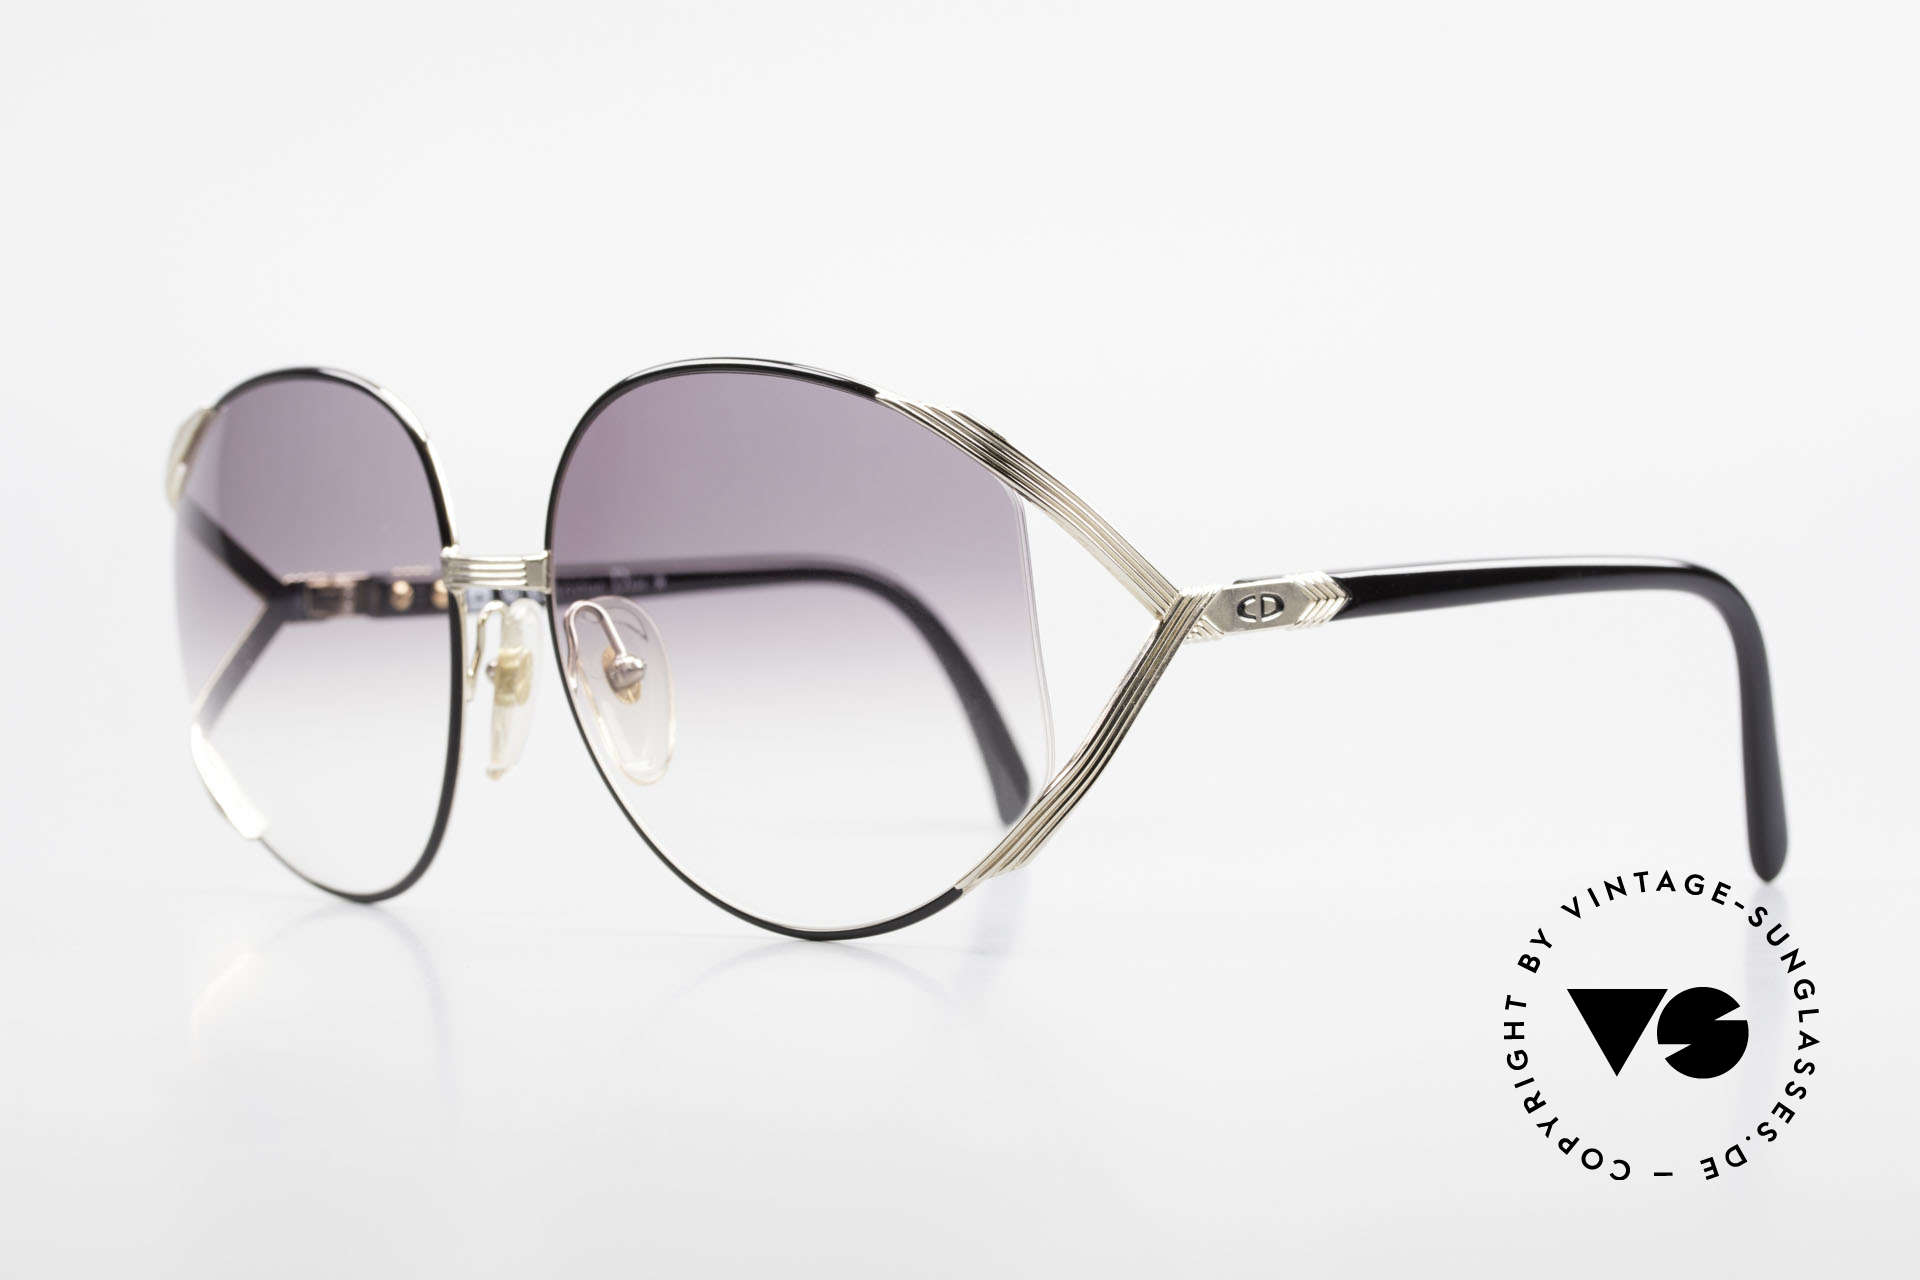 Christian Dior 2250 XL Oversized Shades 80's Ladies, precious 80's model with Dior case & 1 pair extra lenses, Made for Women